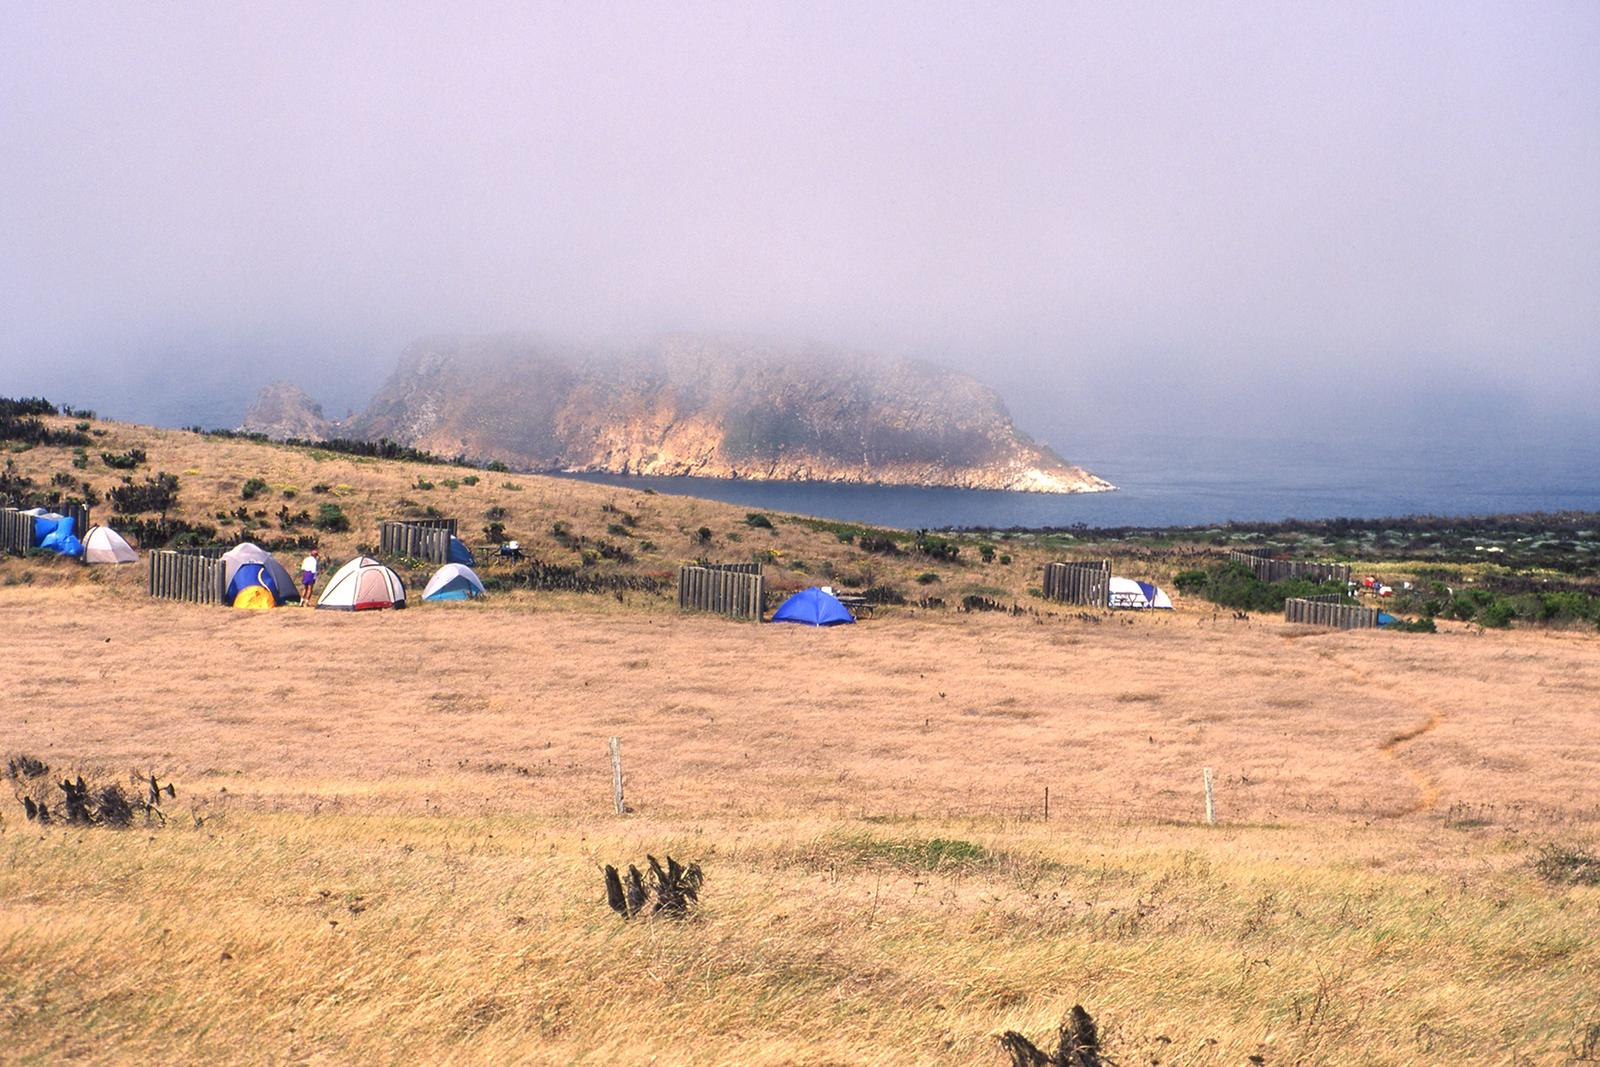 Tents and 5-foot tall windbreaks perches on an ocean bluff overlooking an islet covered in fog.Campground, San Miguel Island